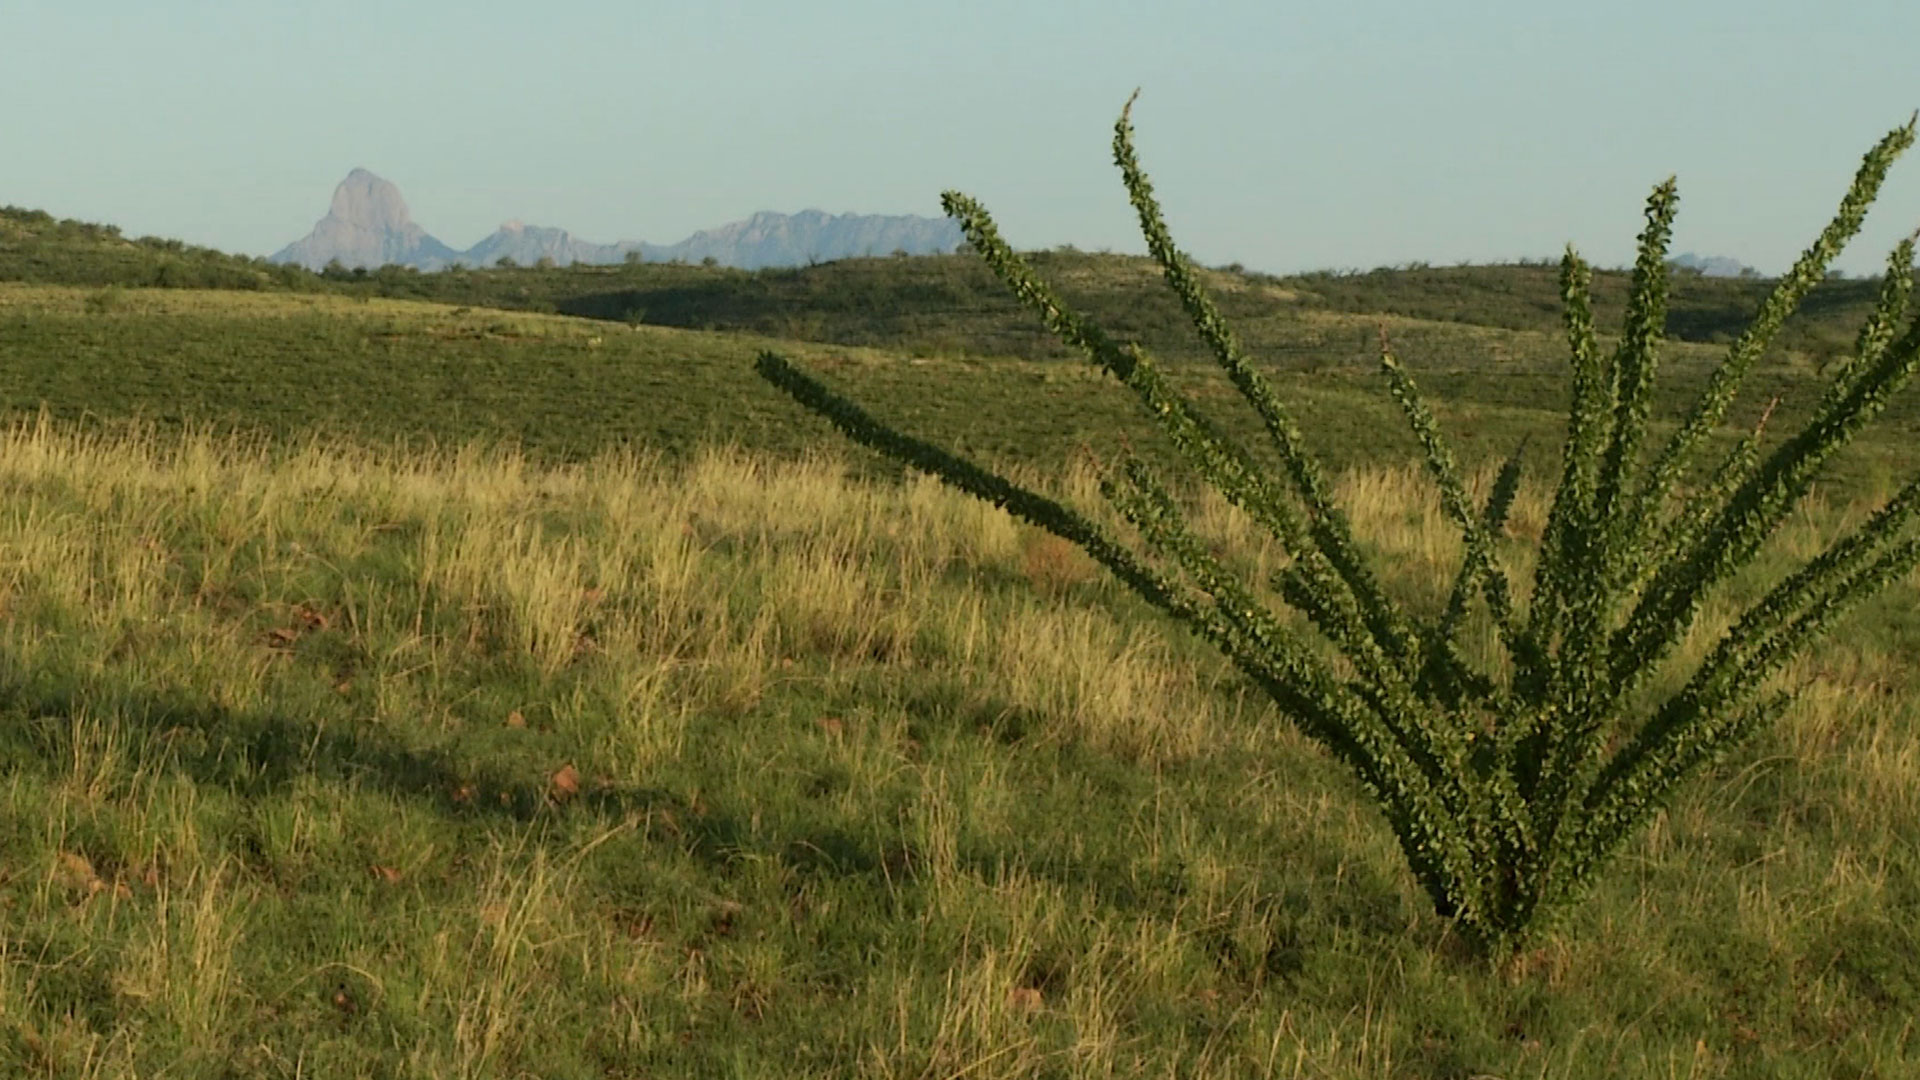 Baboquivari Peak, the most sacred site for the Tohono O'odham people, can be seen from many parts of Buenos Aires National Wildlife Refuge.